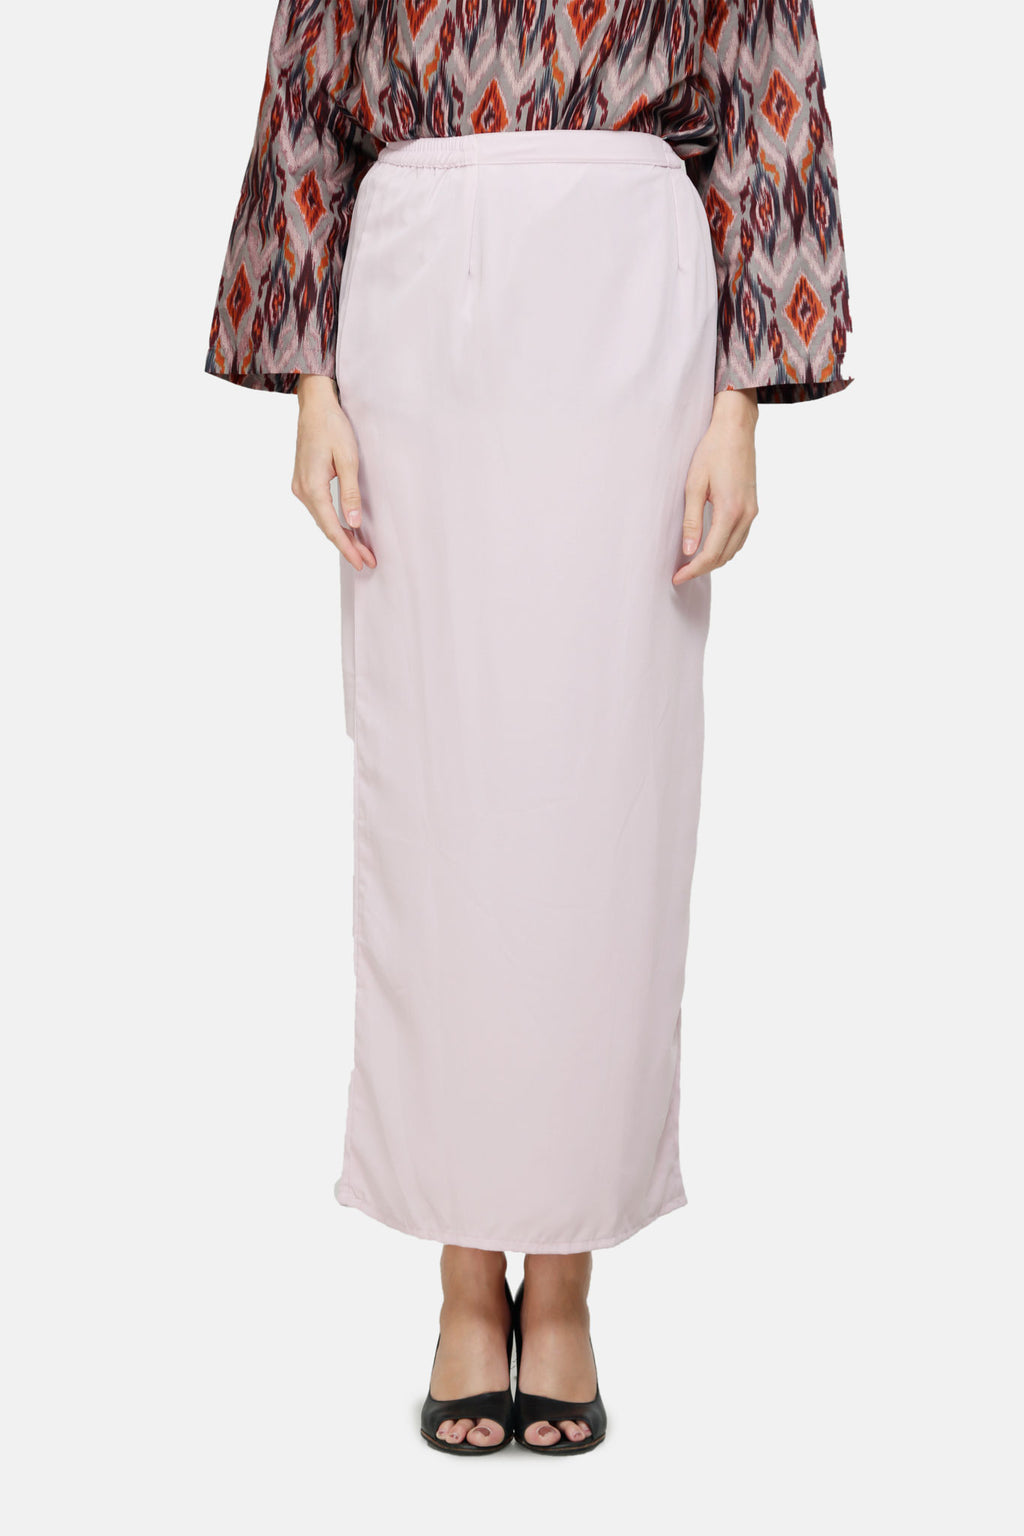 Alia Skirt in Soft Pink